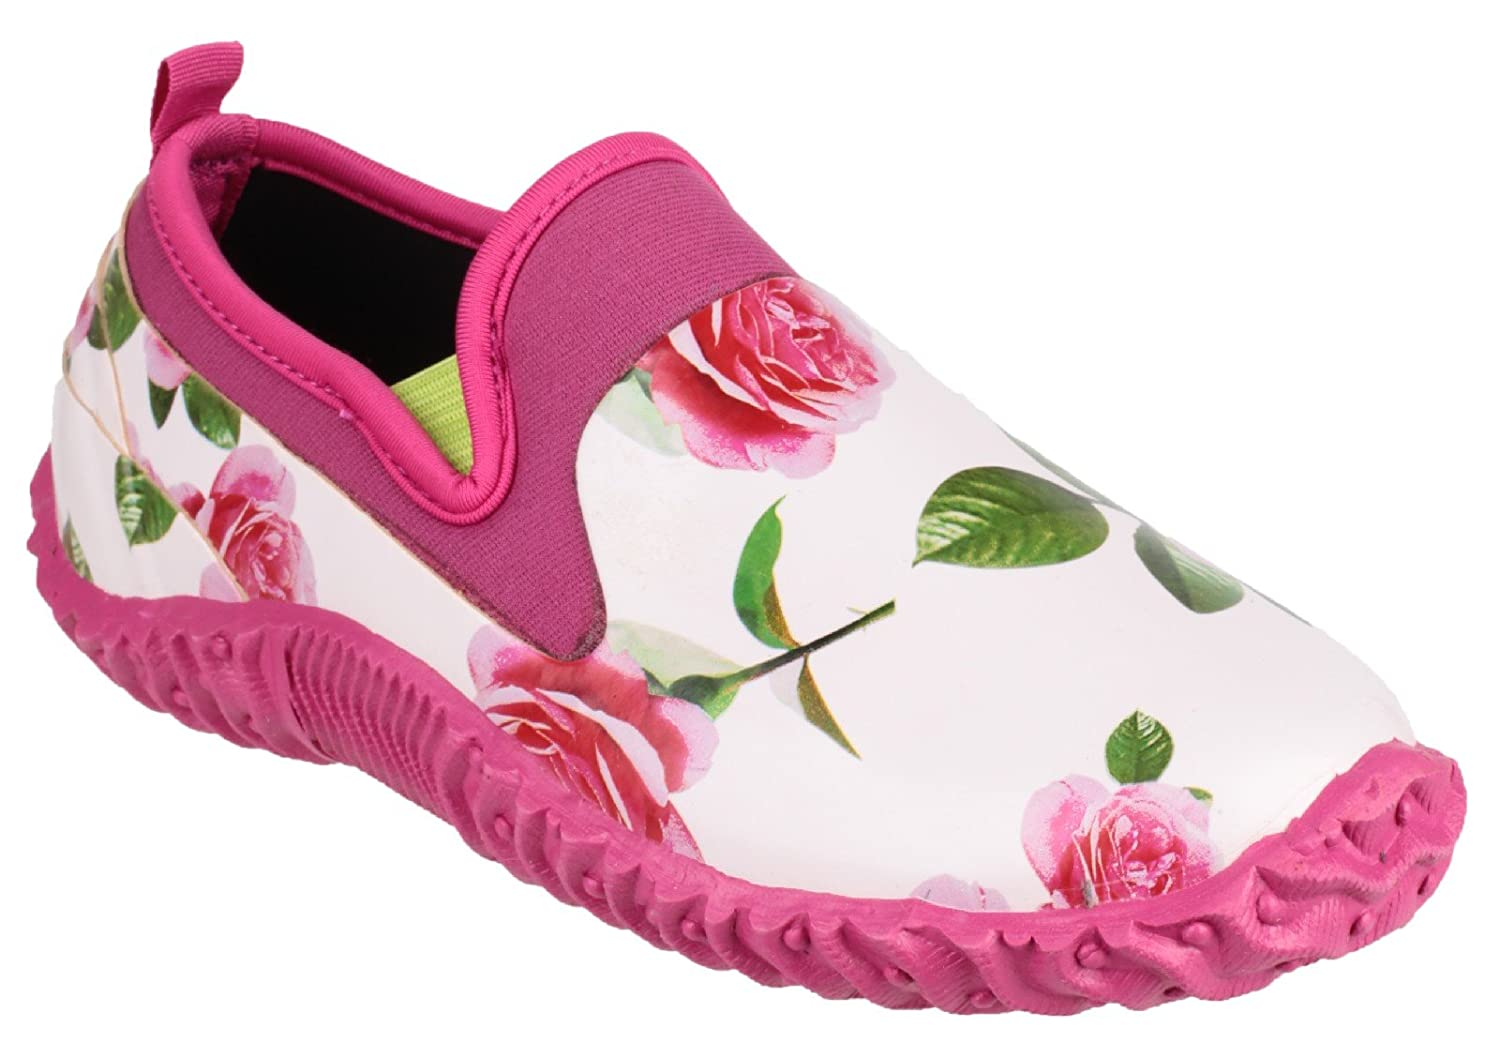 Cotswold girls Cotswold Ladies Backdoor High Def Print Waterproof Garden Shoe Pink Rubber